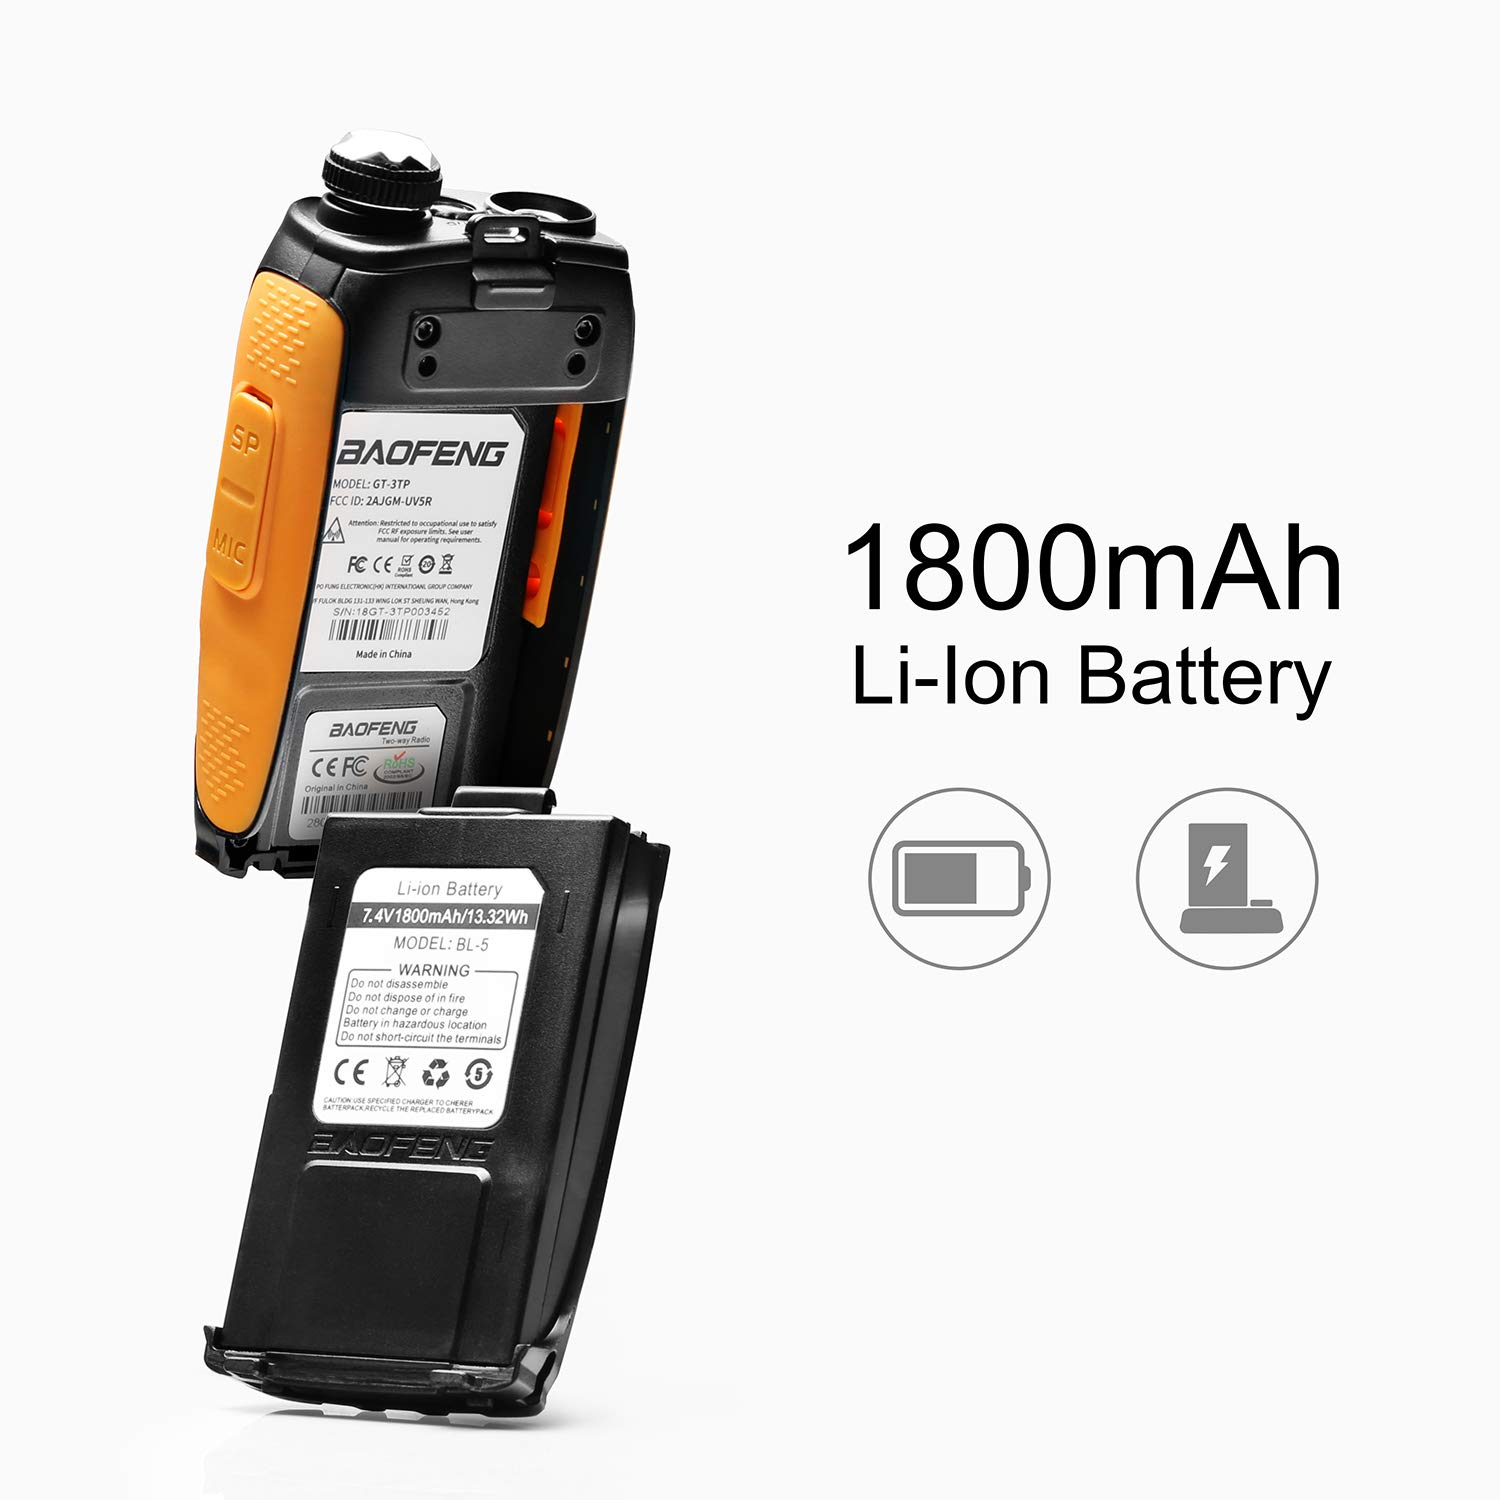 Computer & Office Charitable Baofeng Walkie Talkie Car Charger Uv-5r Uv-5re Uv-82 Gt-3 Portable Car Charger Accessories Car Filling Lines Fast Charging